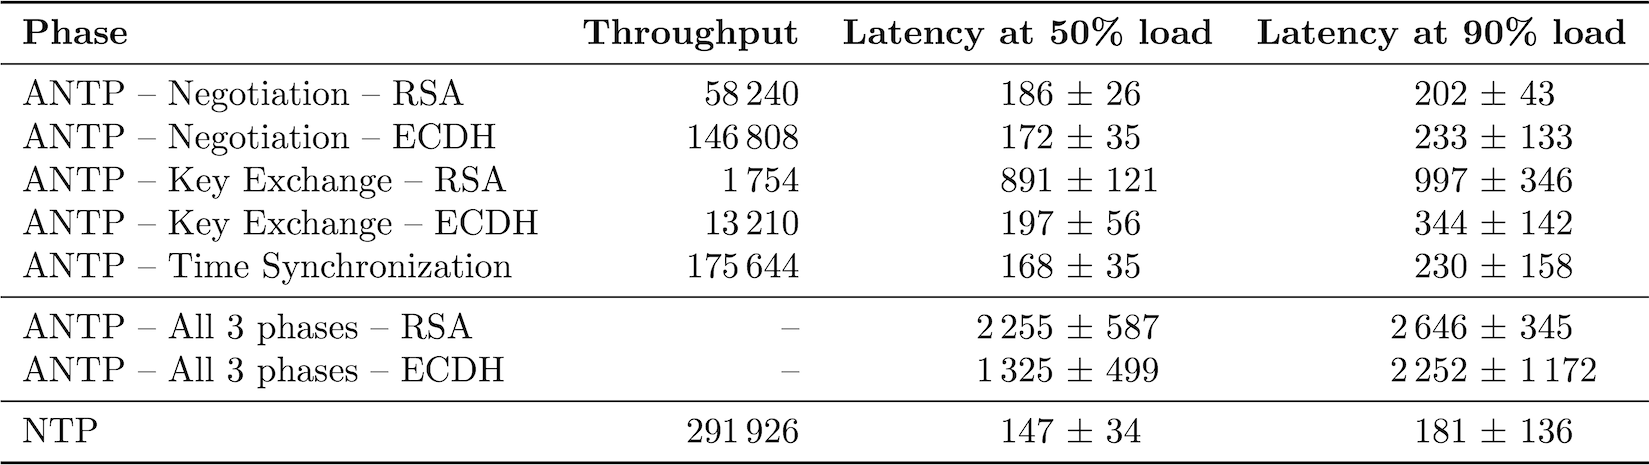 Performance results for each phase of ANTP (top), a complete 3-phase execution of ANTP (middle), and NTP (bottom). <small>Throughput: mean completed phases per second. Latency: mean and standard deviation of the latency in microseconds of server responses at either 50% or 90% server load.</small>